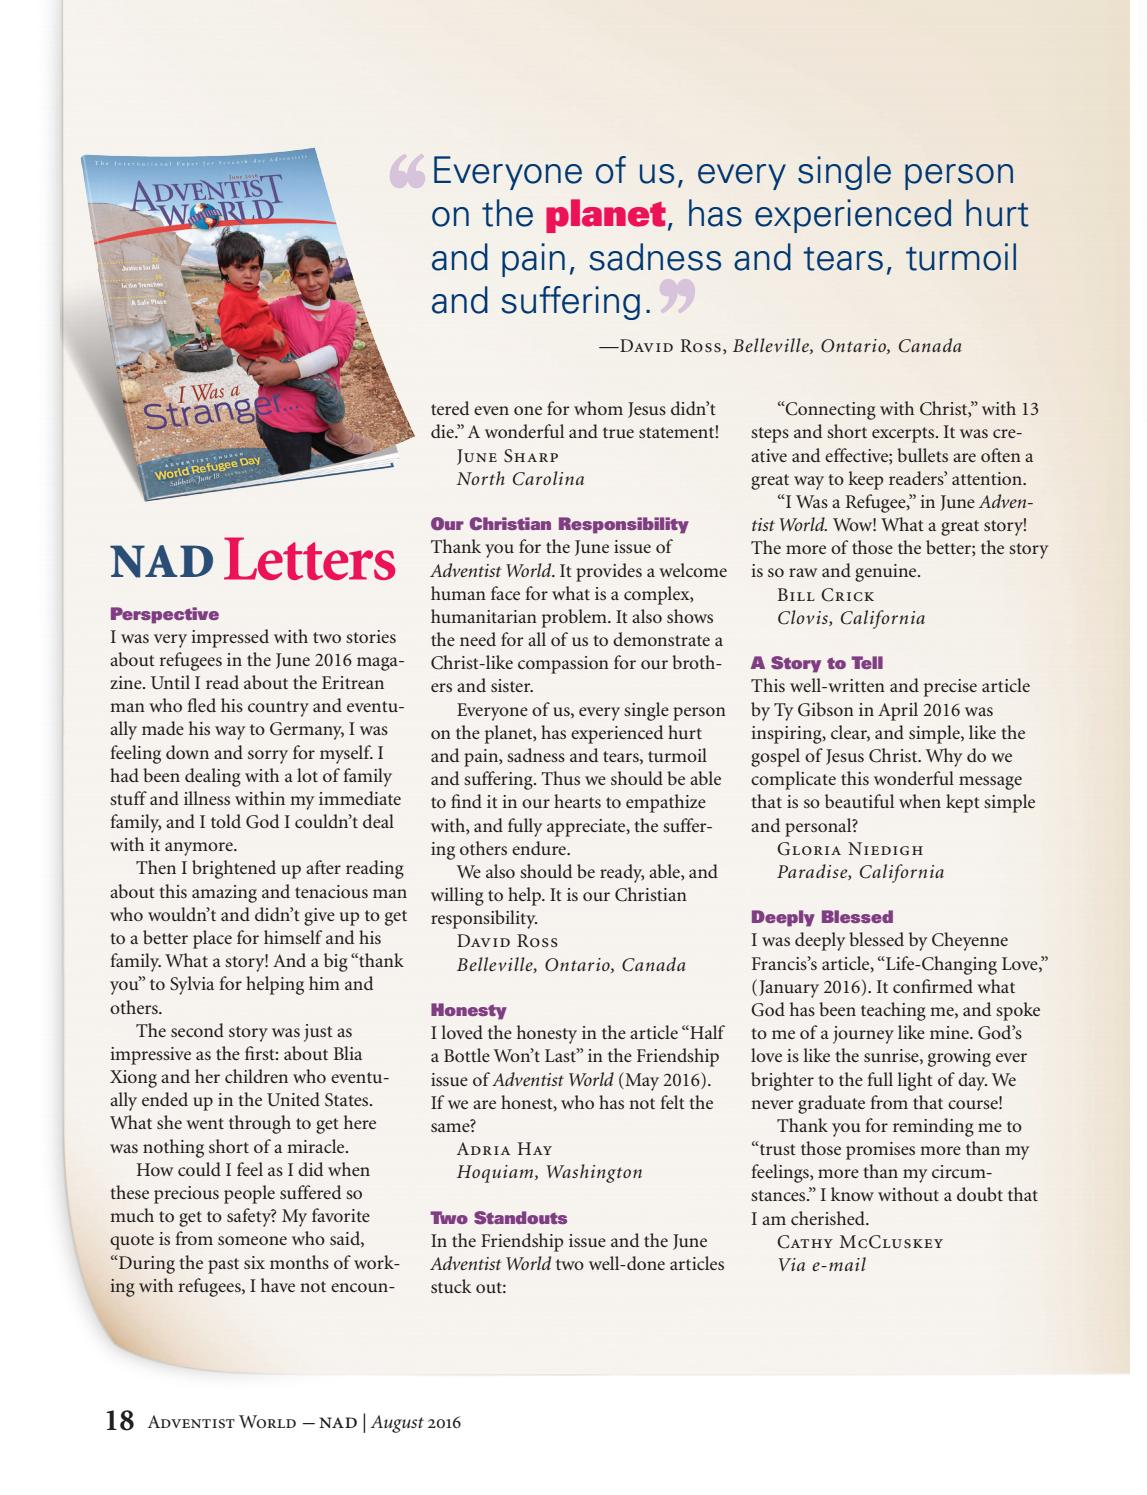 AW NAD English - July 2016 by Adventist World Magazine - issuu